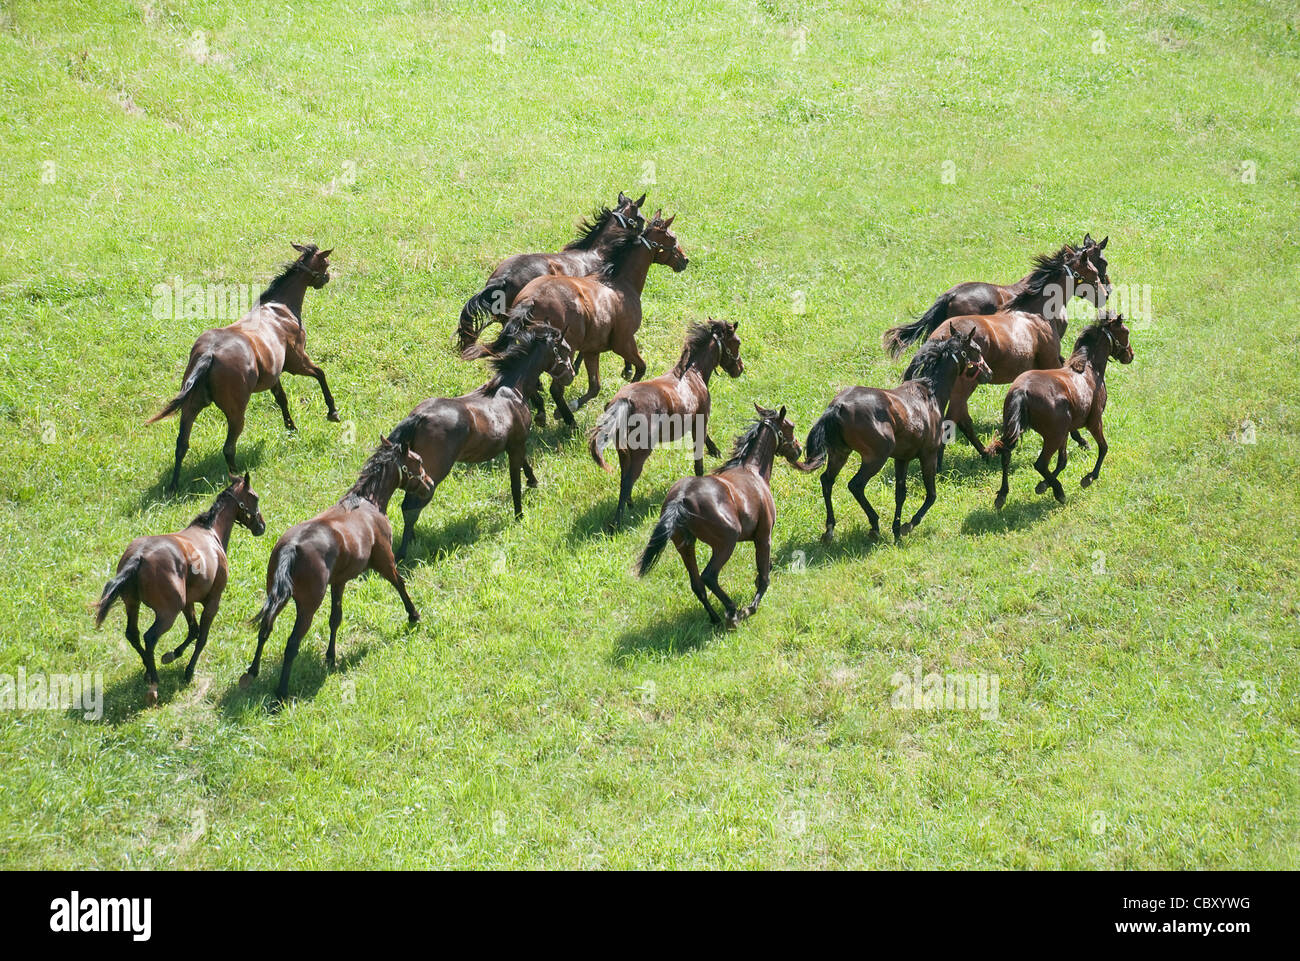 Herd of Thoroughbred horse yearlings gallop - Stock Image